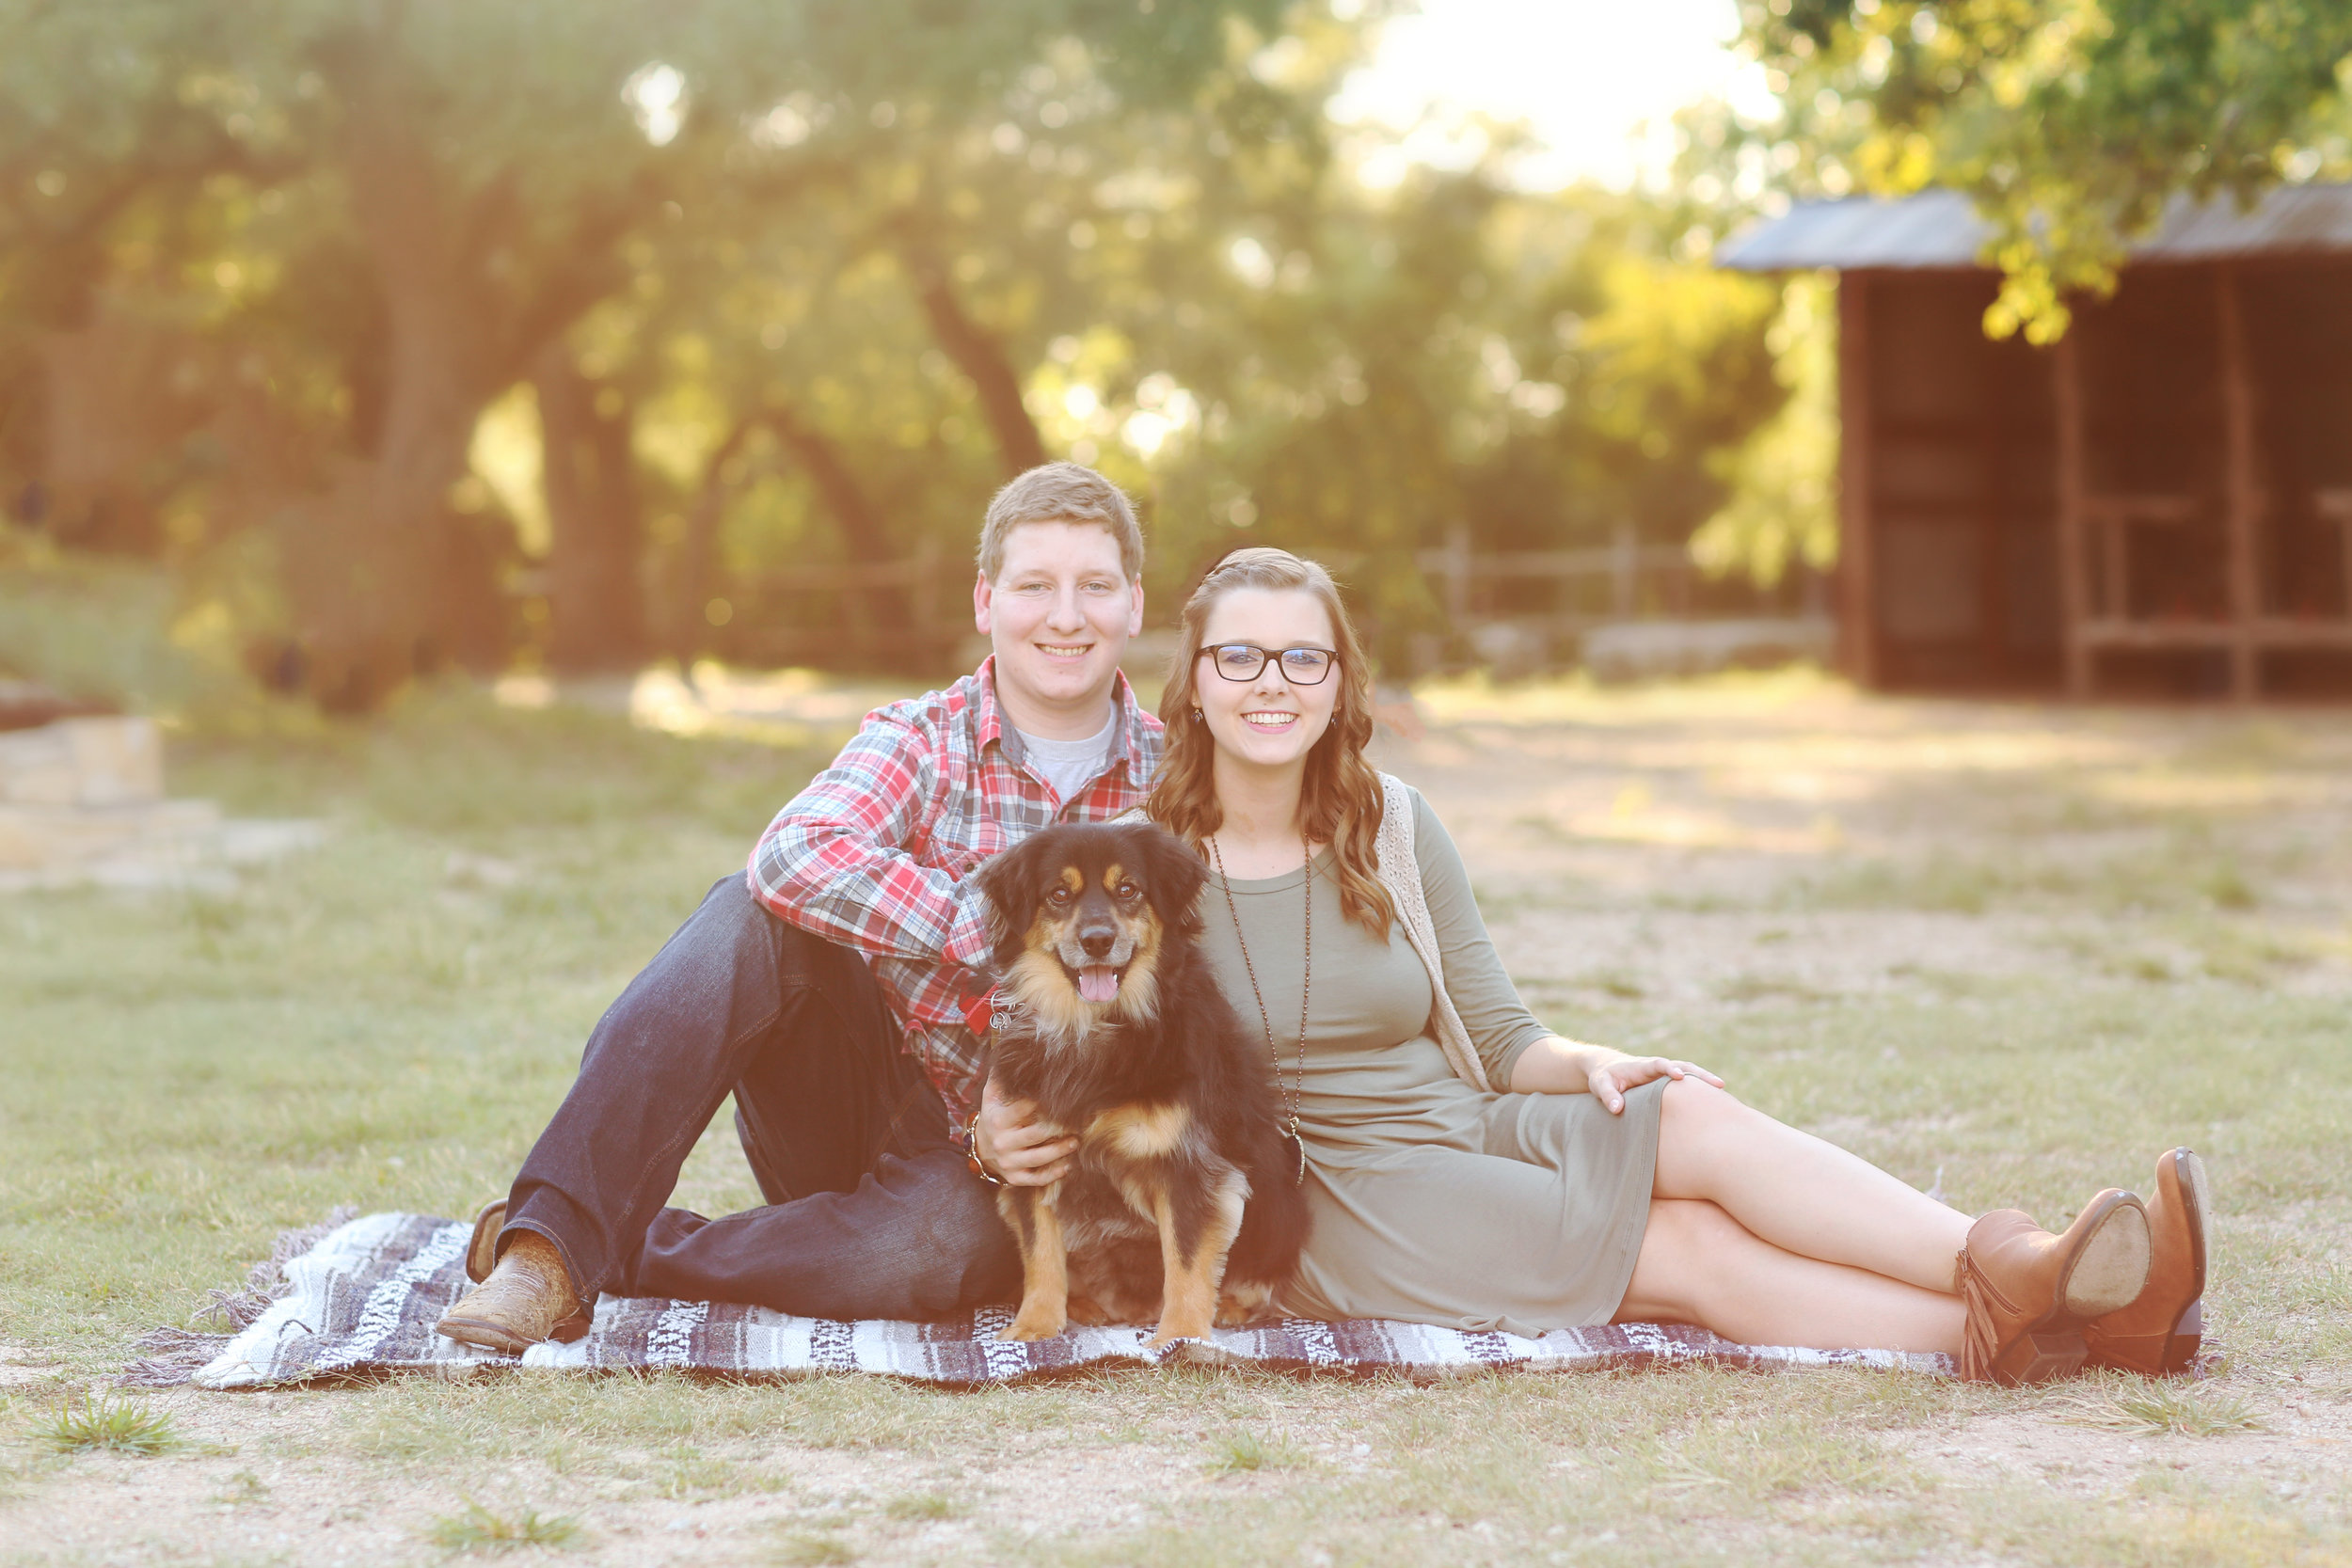 About Me - I have never been good at these little bios, but here it goes! I'm Dalton and I am a commercial photographer based in Fort Worth, Texas. That is me, my wife Brittany, and our dog Riley in the photo to the right there.I have been shooting since I first picked up a camera when I was around 16 years old. Getting my driver's license gave me the freedom to explore the backroads of Texas and that urge to explore has stuck with me ever since, and is what fuels my travels to this day.I enjoy all styles of photography from portraits, real estate, food and more, but landscape and urban photography is where my true passions are. My end goal is always to turn that passion into something that I can share with others, whether that be in the form of a photo print, photography workshop, or even a simple screensaver.I hope you enjoy your time here on my website, and don't forget to go check out my blog or social media for any of my latest work. Feel free to contact me for any reason I would love to hear from you!- Dalton